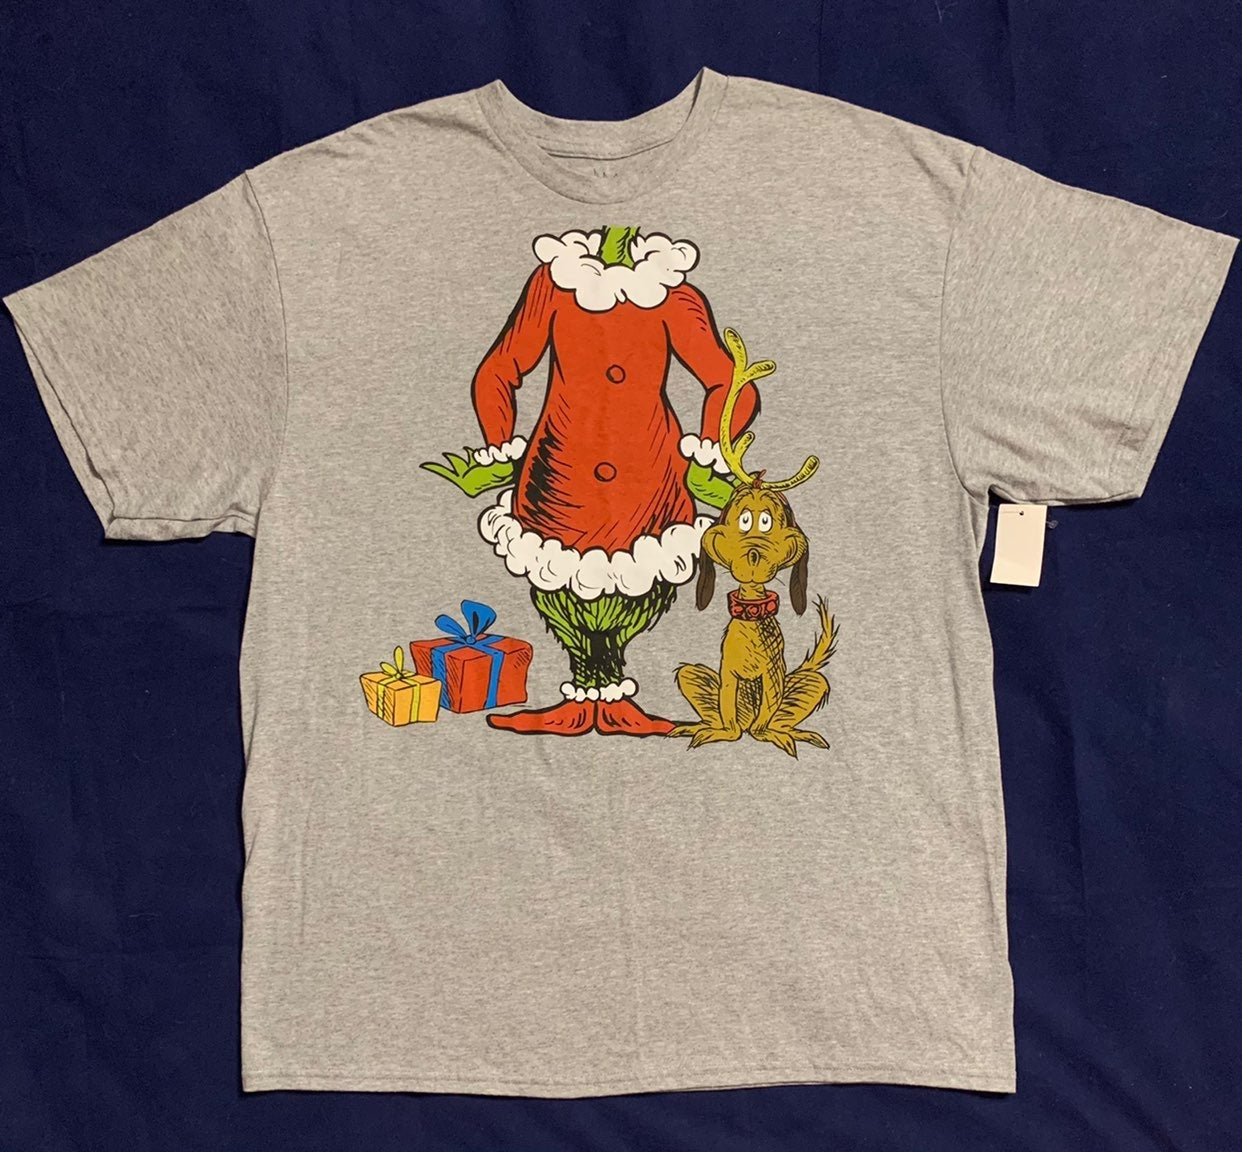 Vintage The Grinch Christmas T Shirt XL